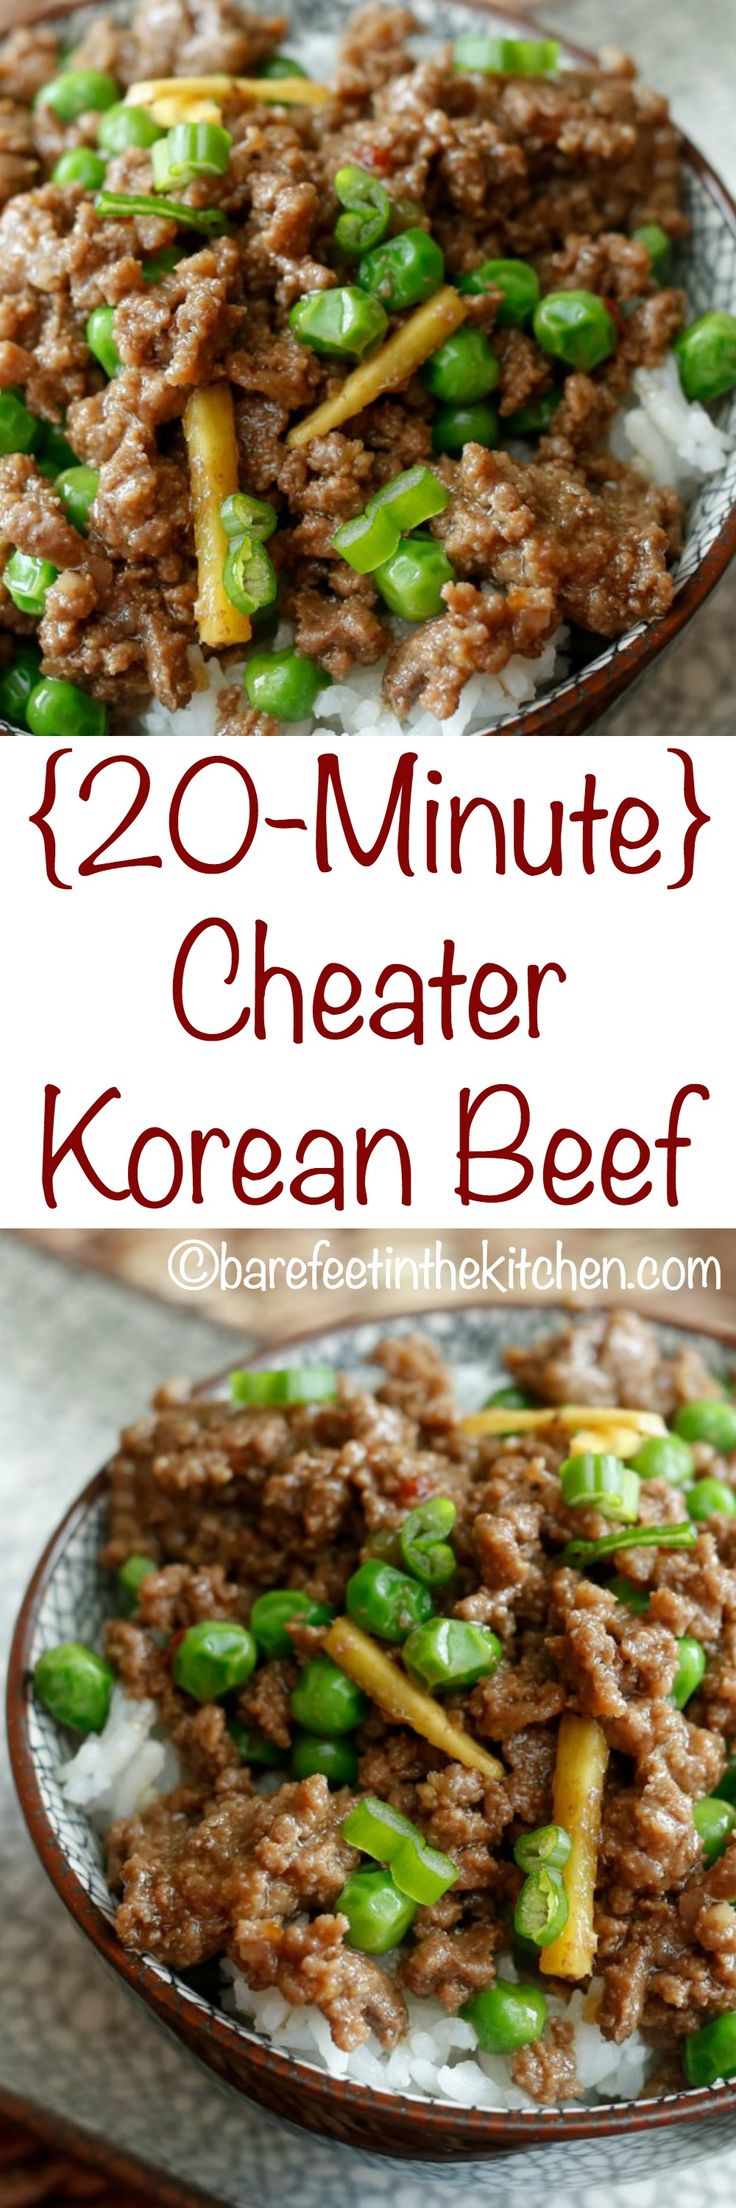 {20-Minute} Cheater Korean Beef is a meal the whole family will love! Get the recipe at barefeetinthekitchen.com